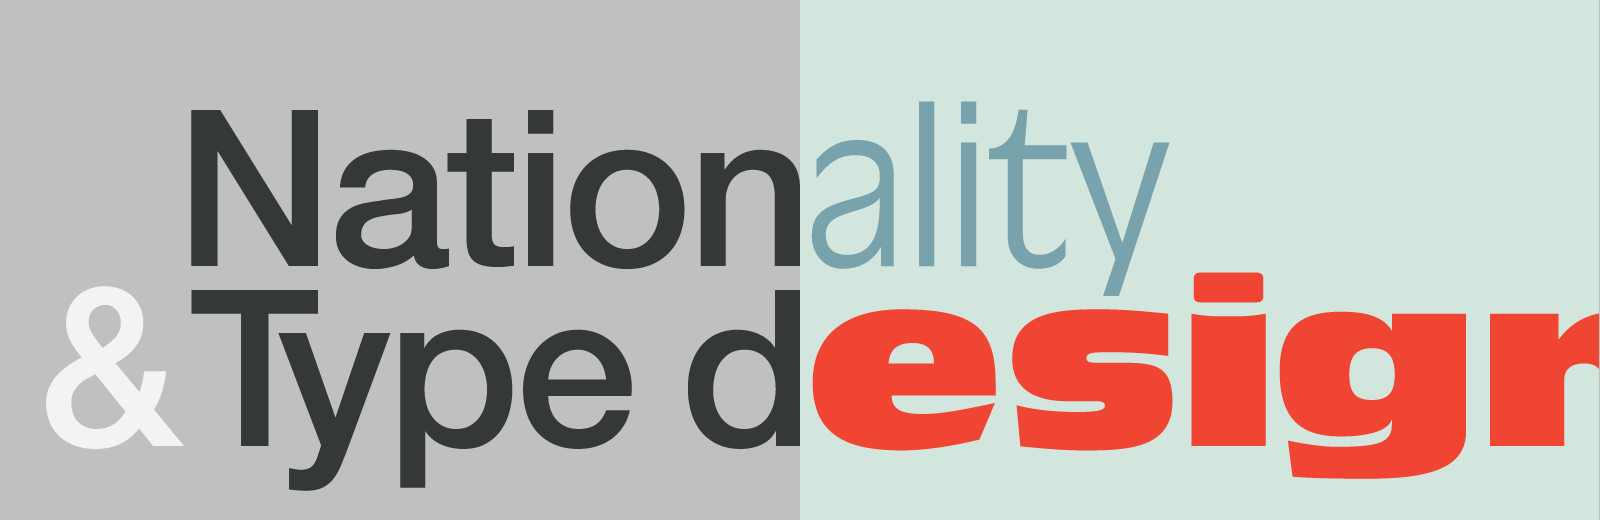 Nationality and Type design